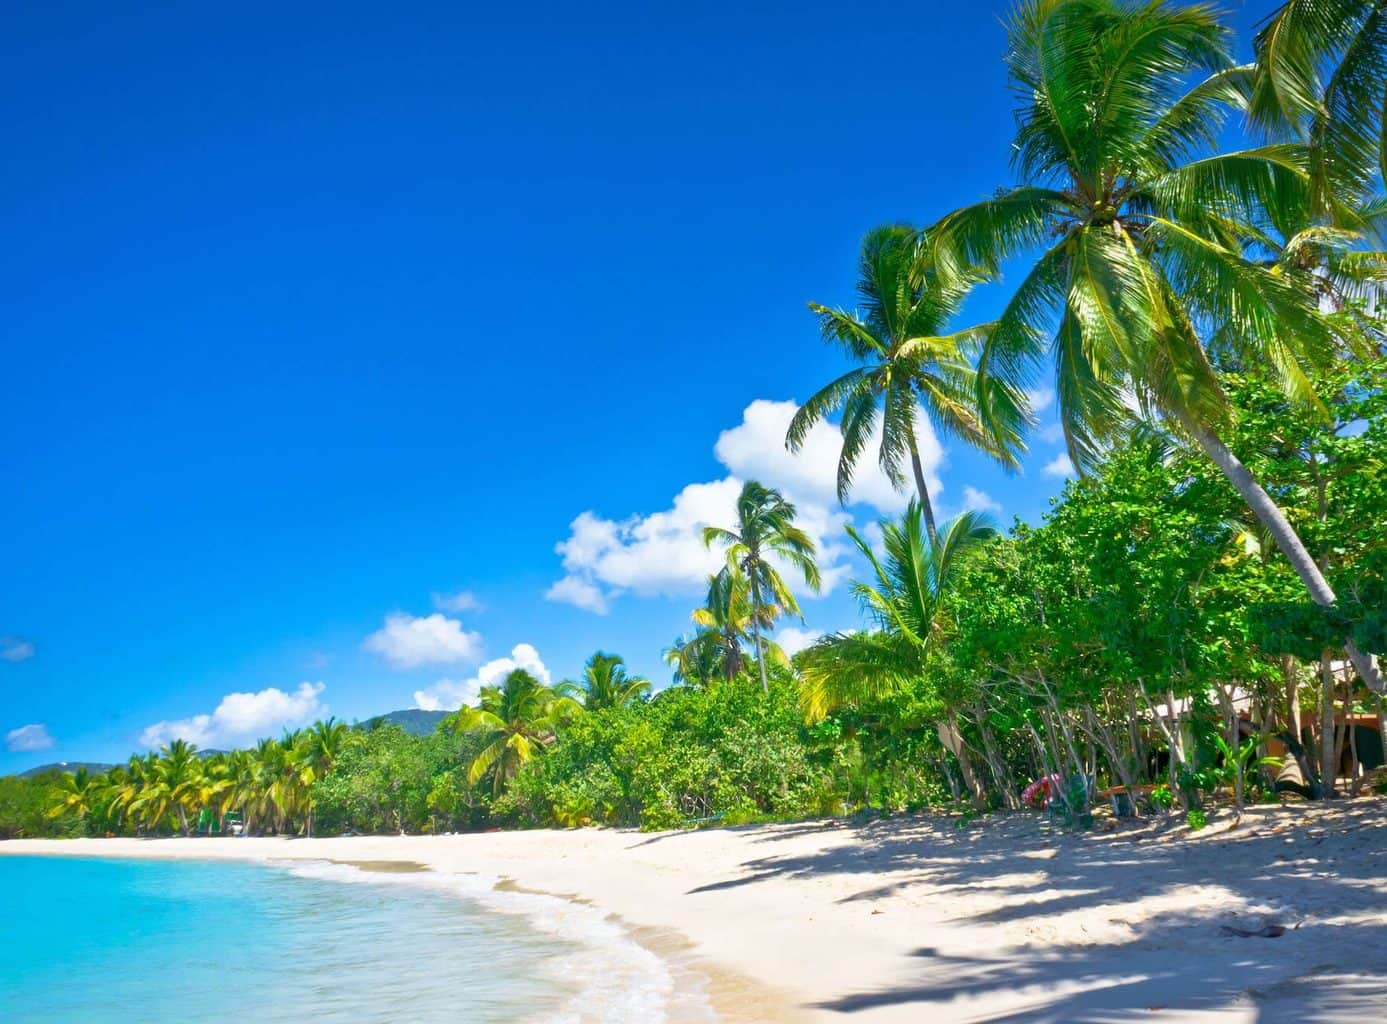 Luxury Caribbean Holidays Beach, Palm trees and Ocean view